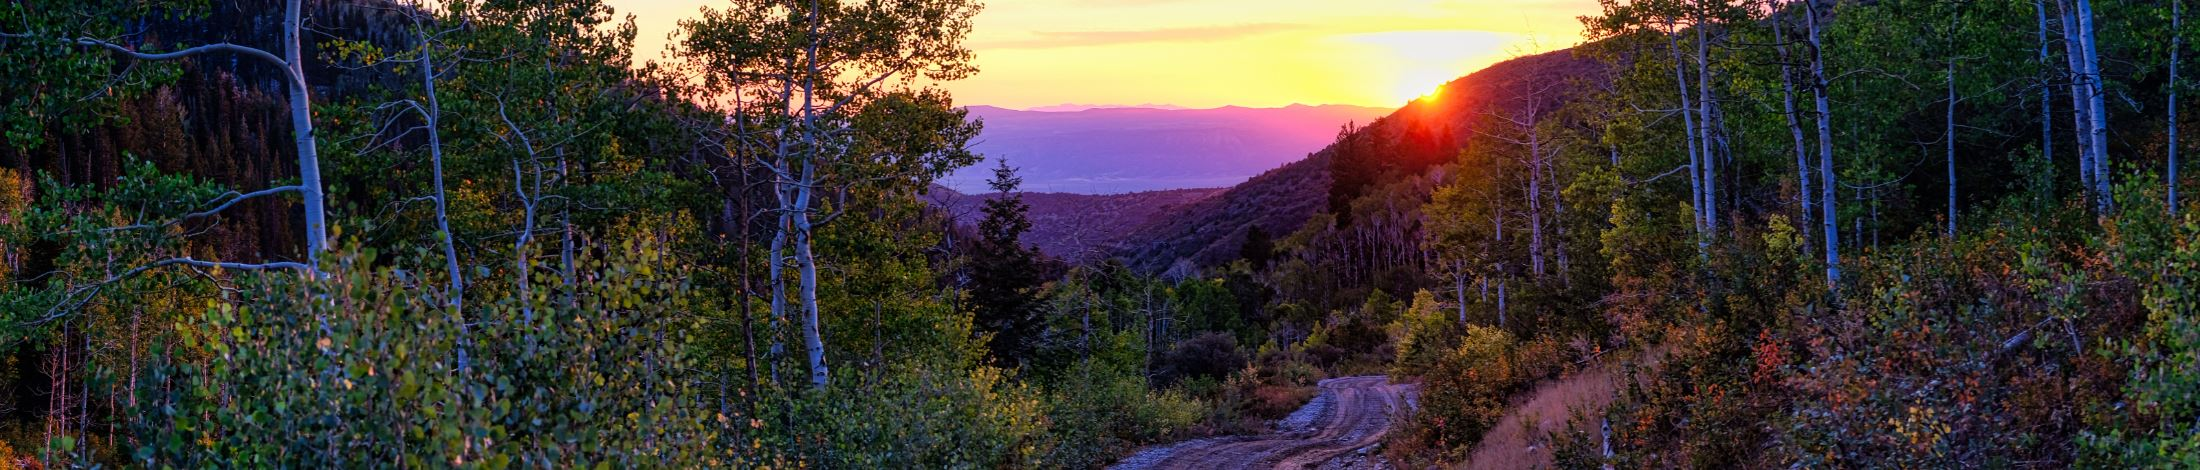 Mountain canyon with sunset